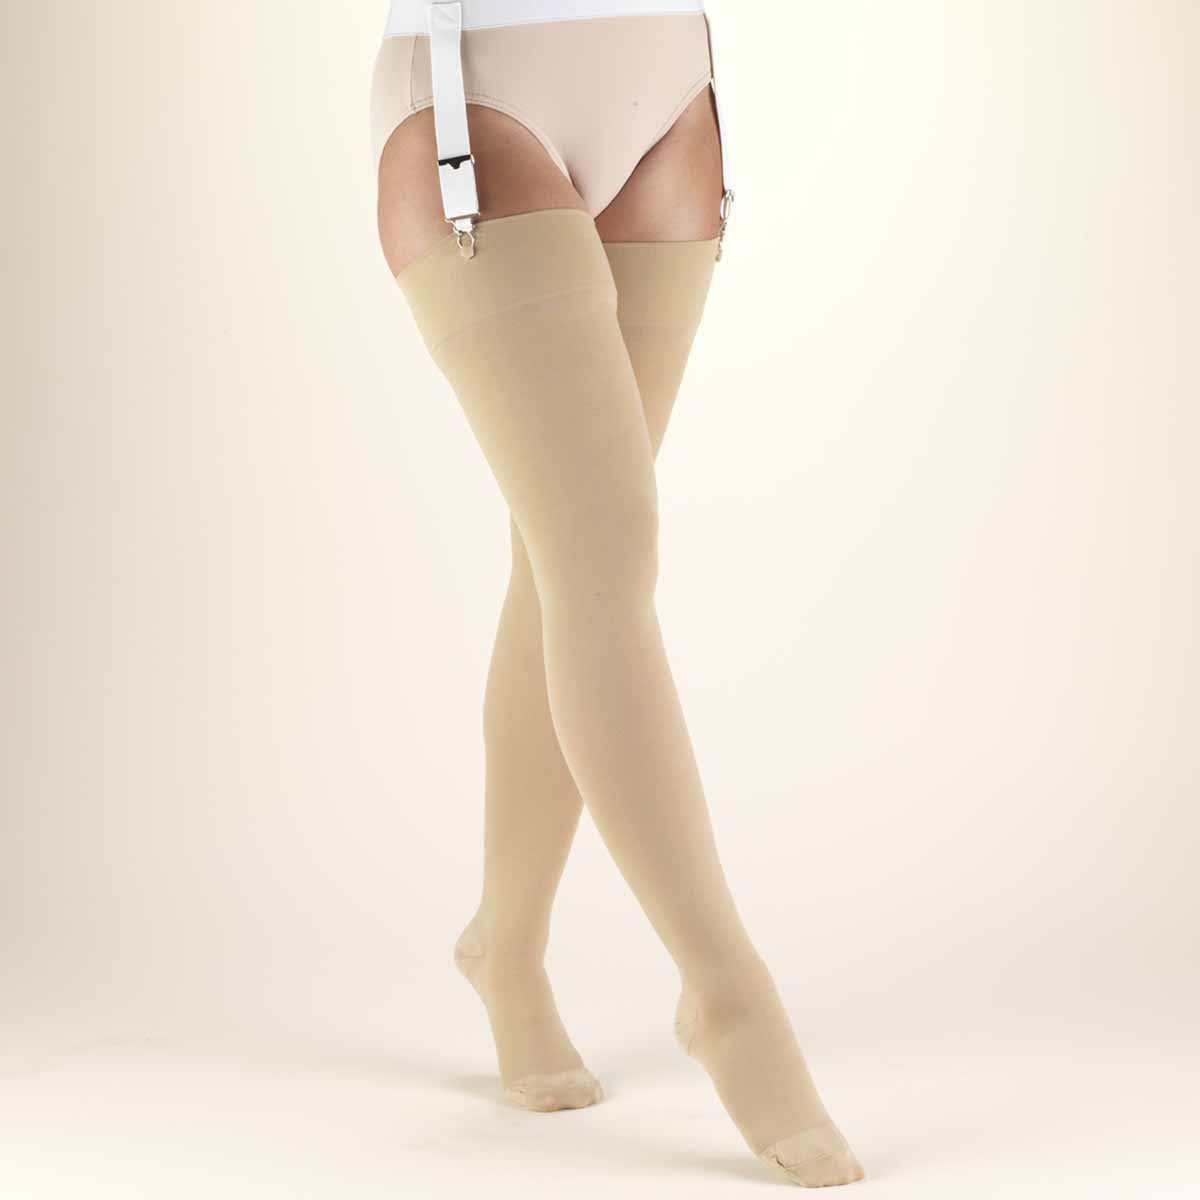 472f44612a truform-classic-medical-closed-toe-20-30-mmhg-thigh-high-support-stockings -807-2_2.jpg